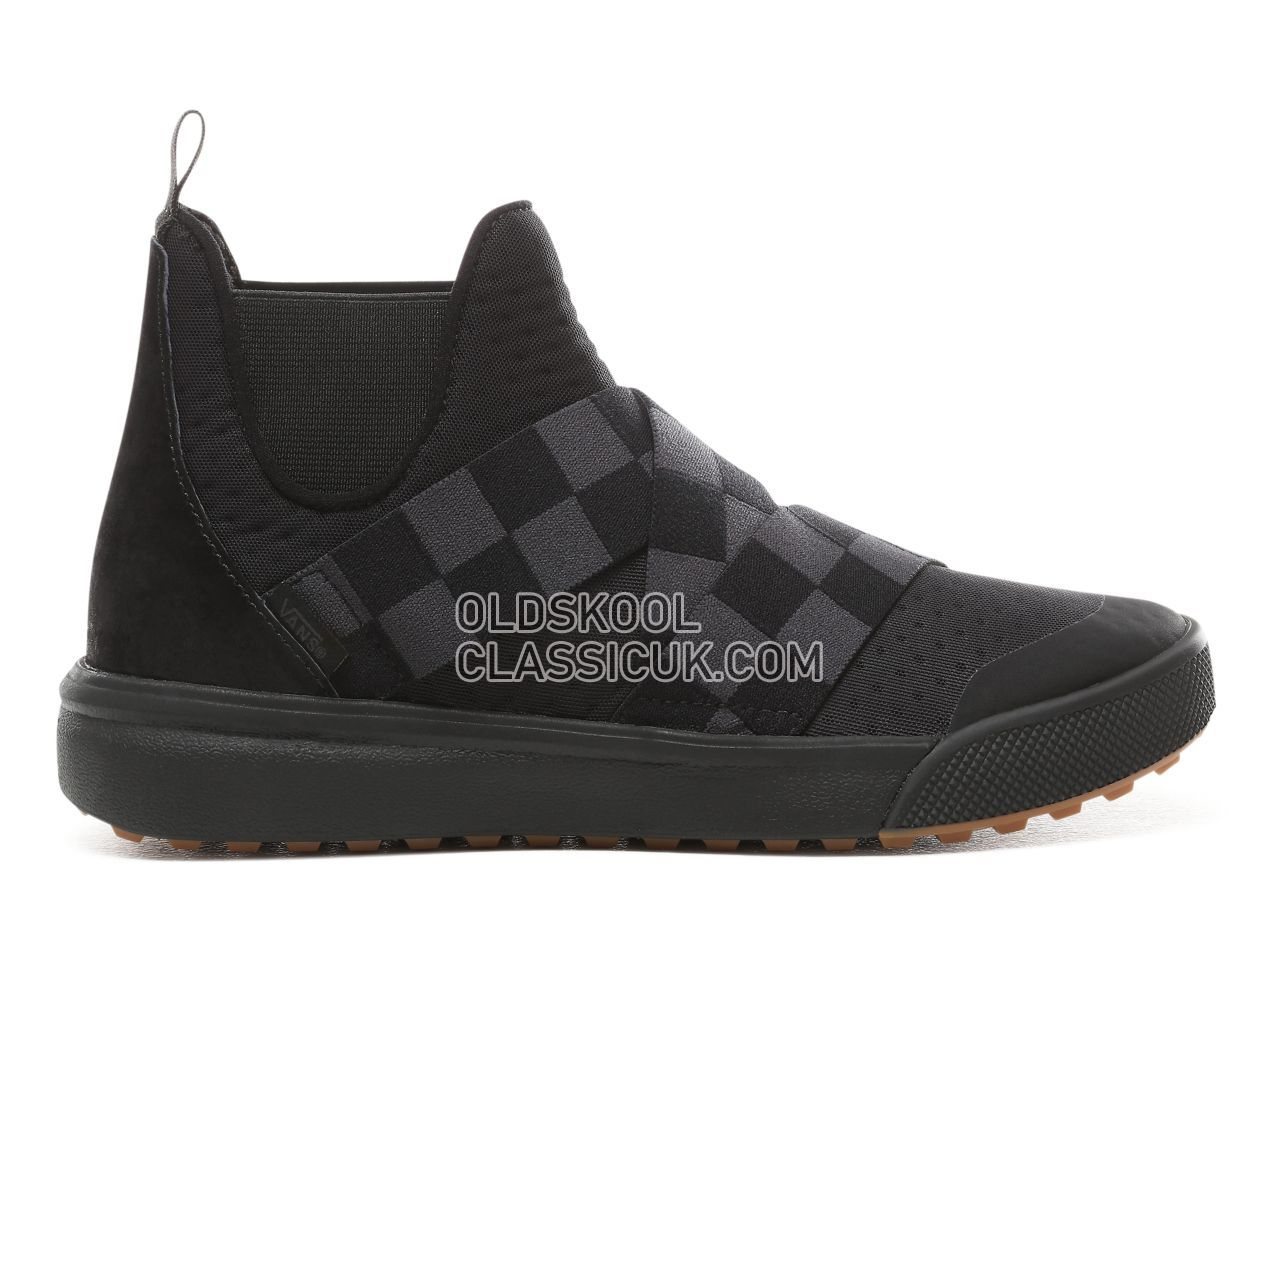 Vans Mega Check Ultrarange Gore Hi Sneakers Womens (Mega Check) Black/Black VN0A3TKXURJ Shoes